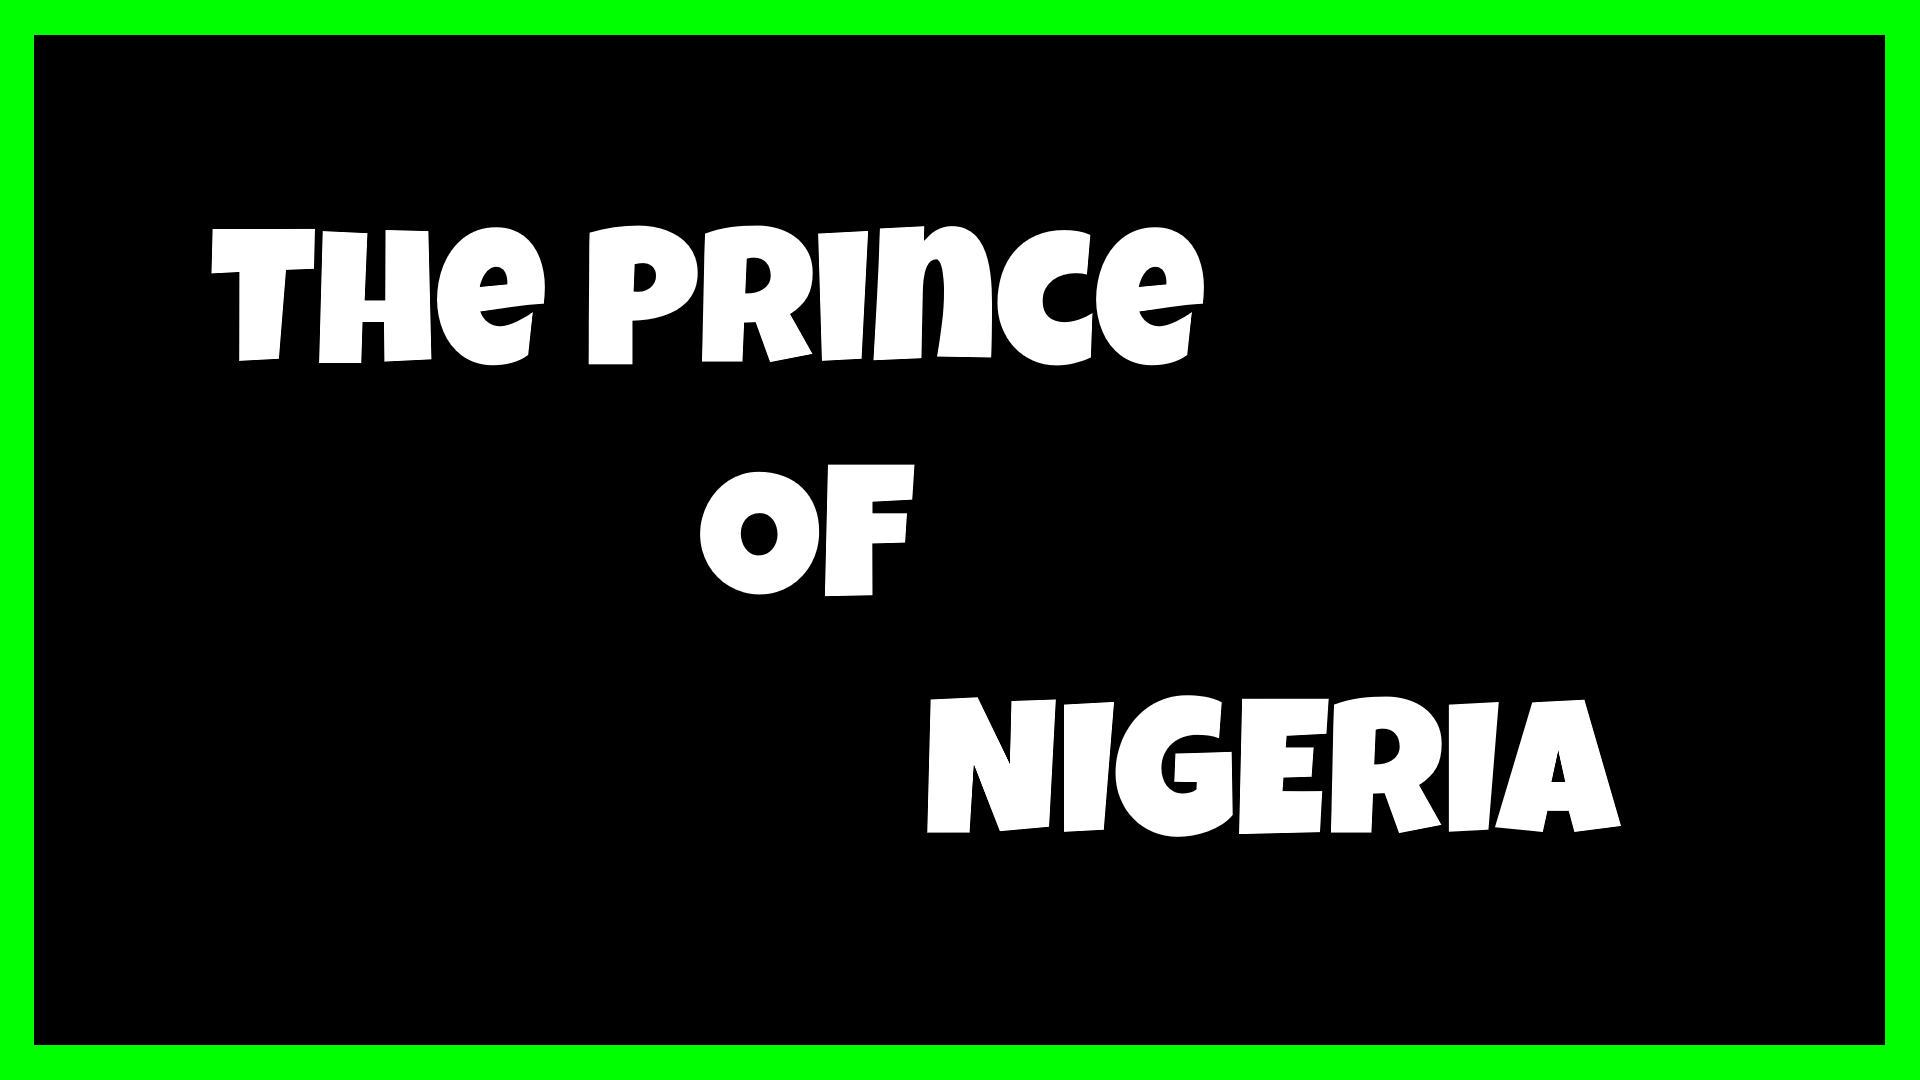 The Prince of Nigeria